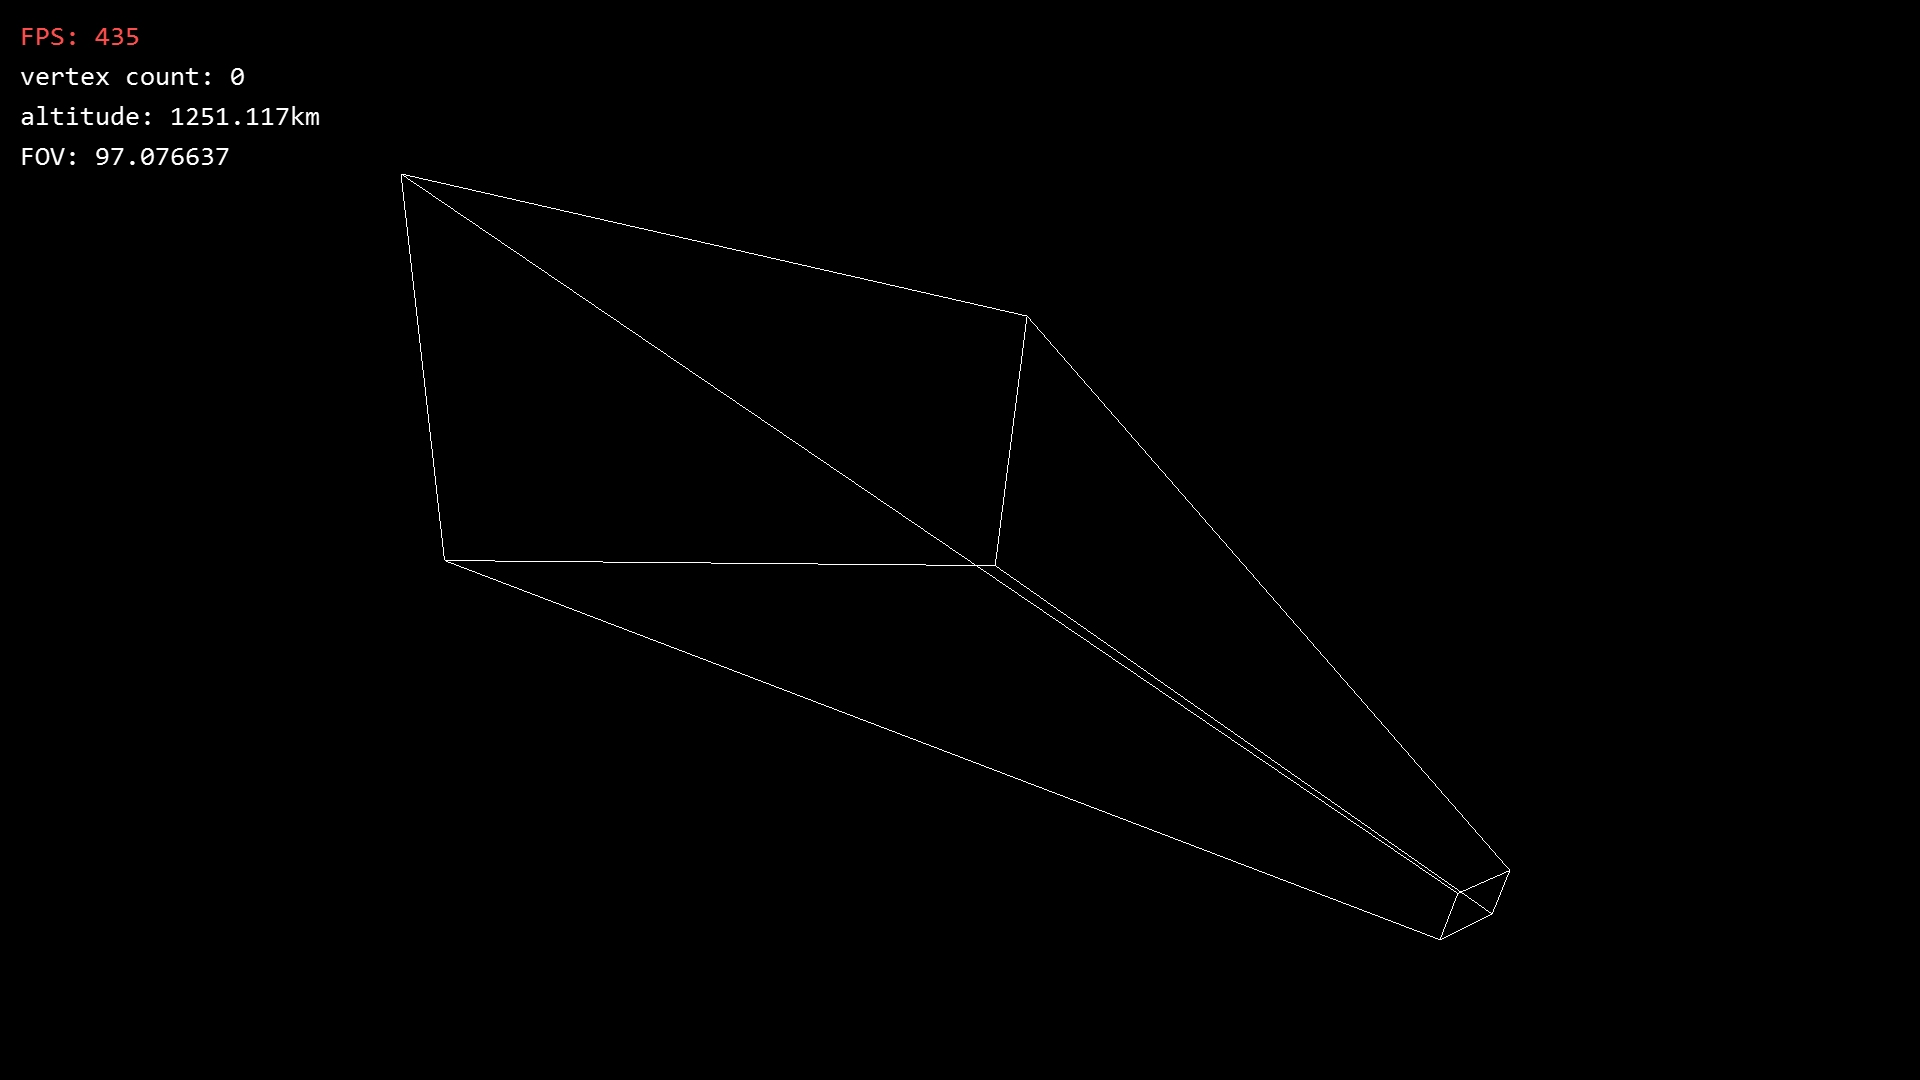 Camera view clipping frustum terrain generation c++ opengl